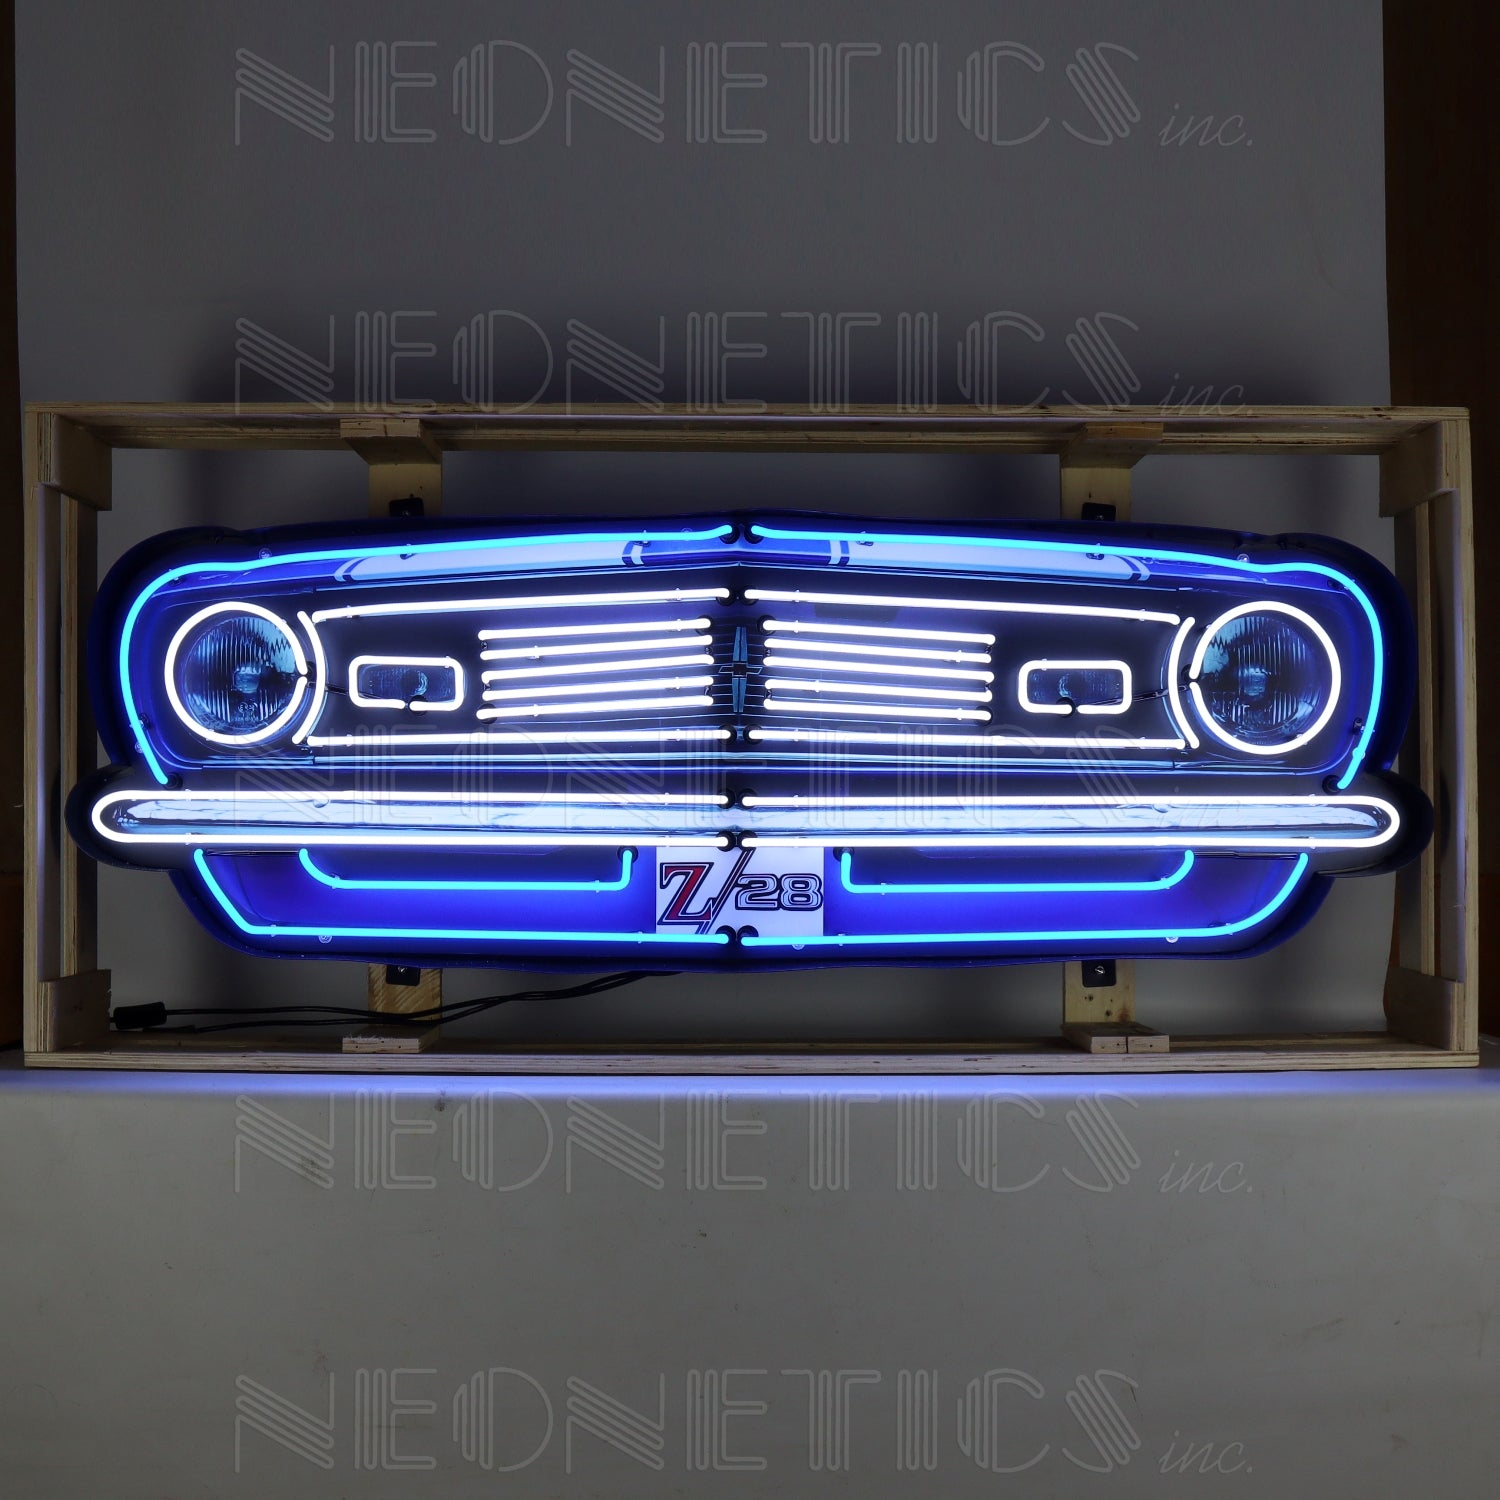 Camaro Z28 Grill Neon Sign in a Steel Can